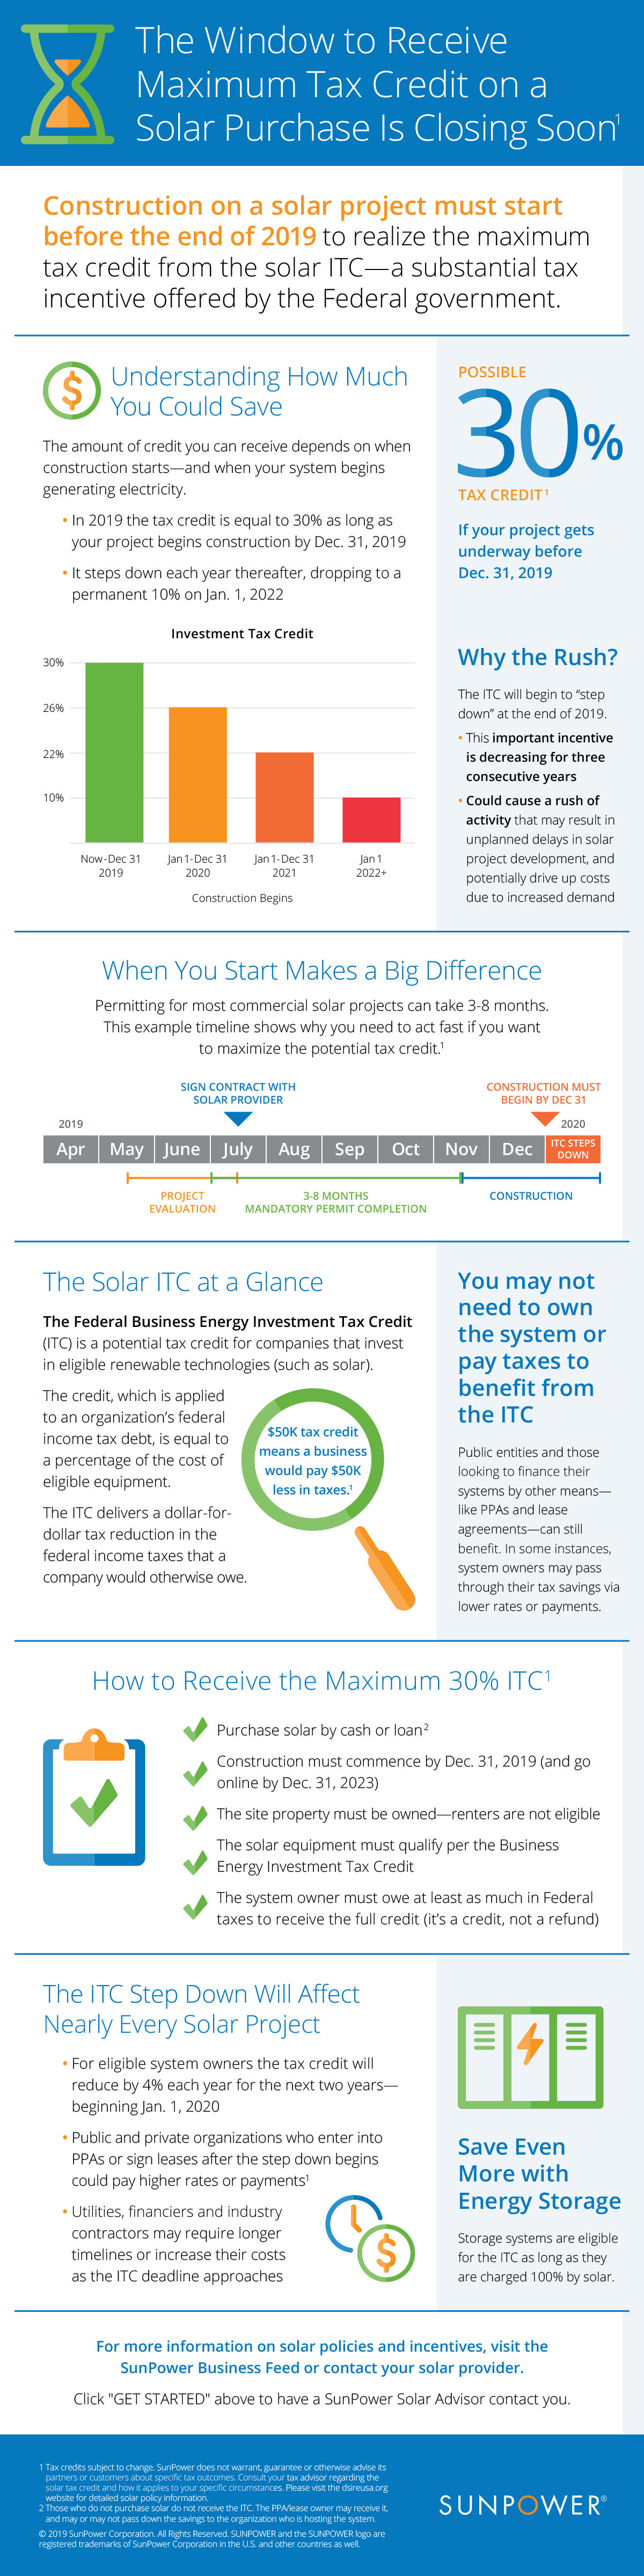 Infographic explaining the urgency of the solar Investment Tax Credit